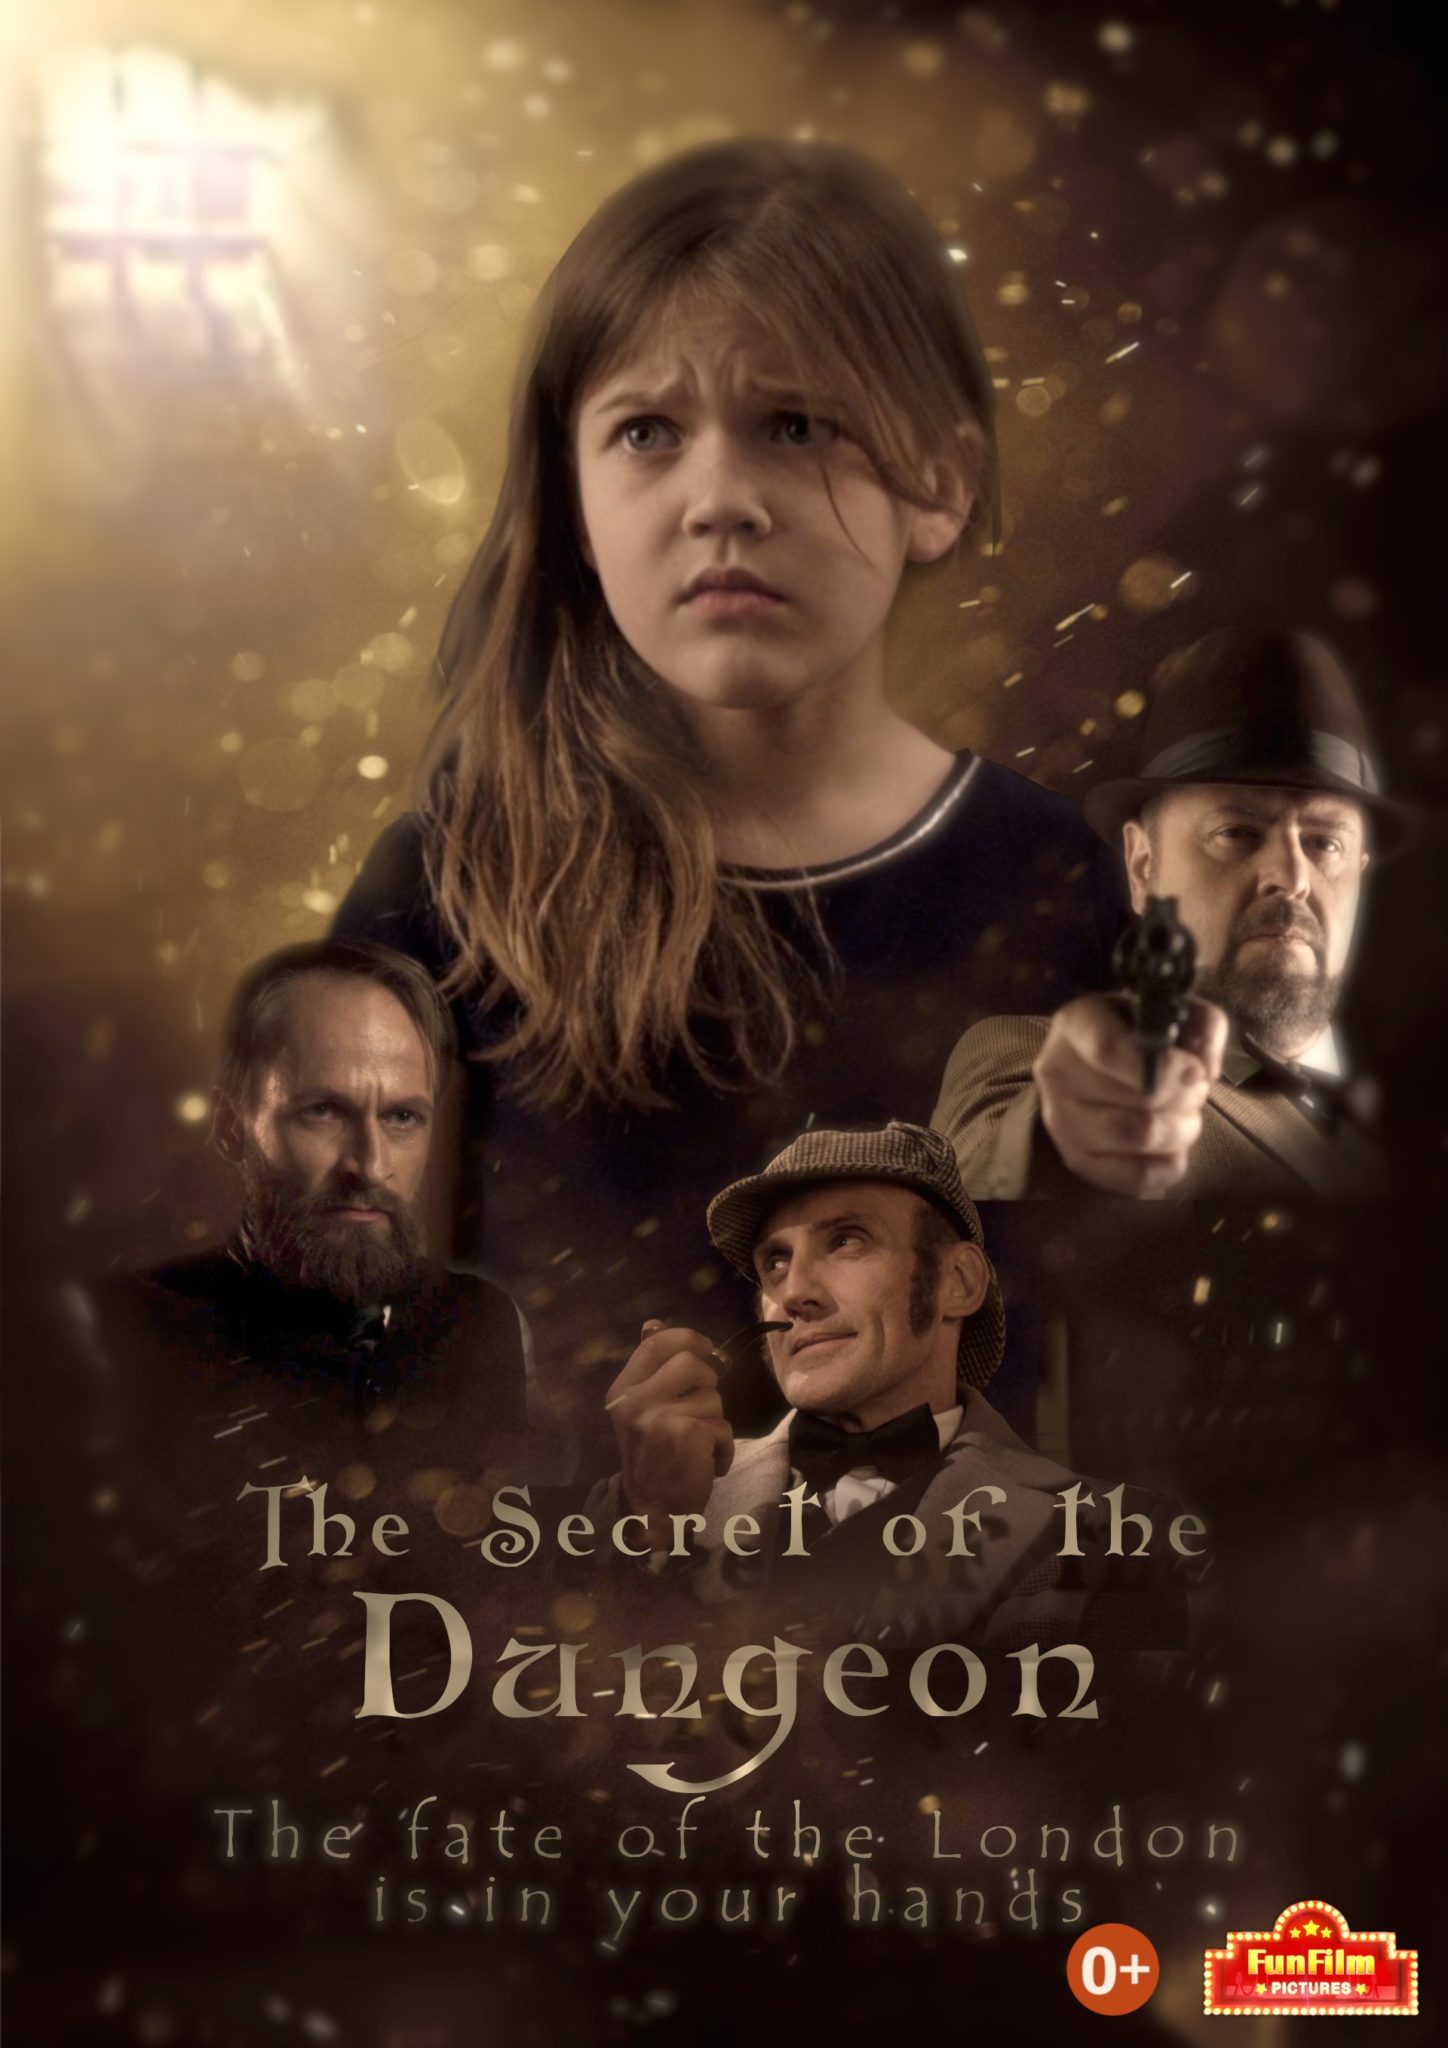 sherlock poster agata EN 13 07 18 - The Secret of the Dungeon